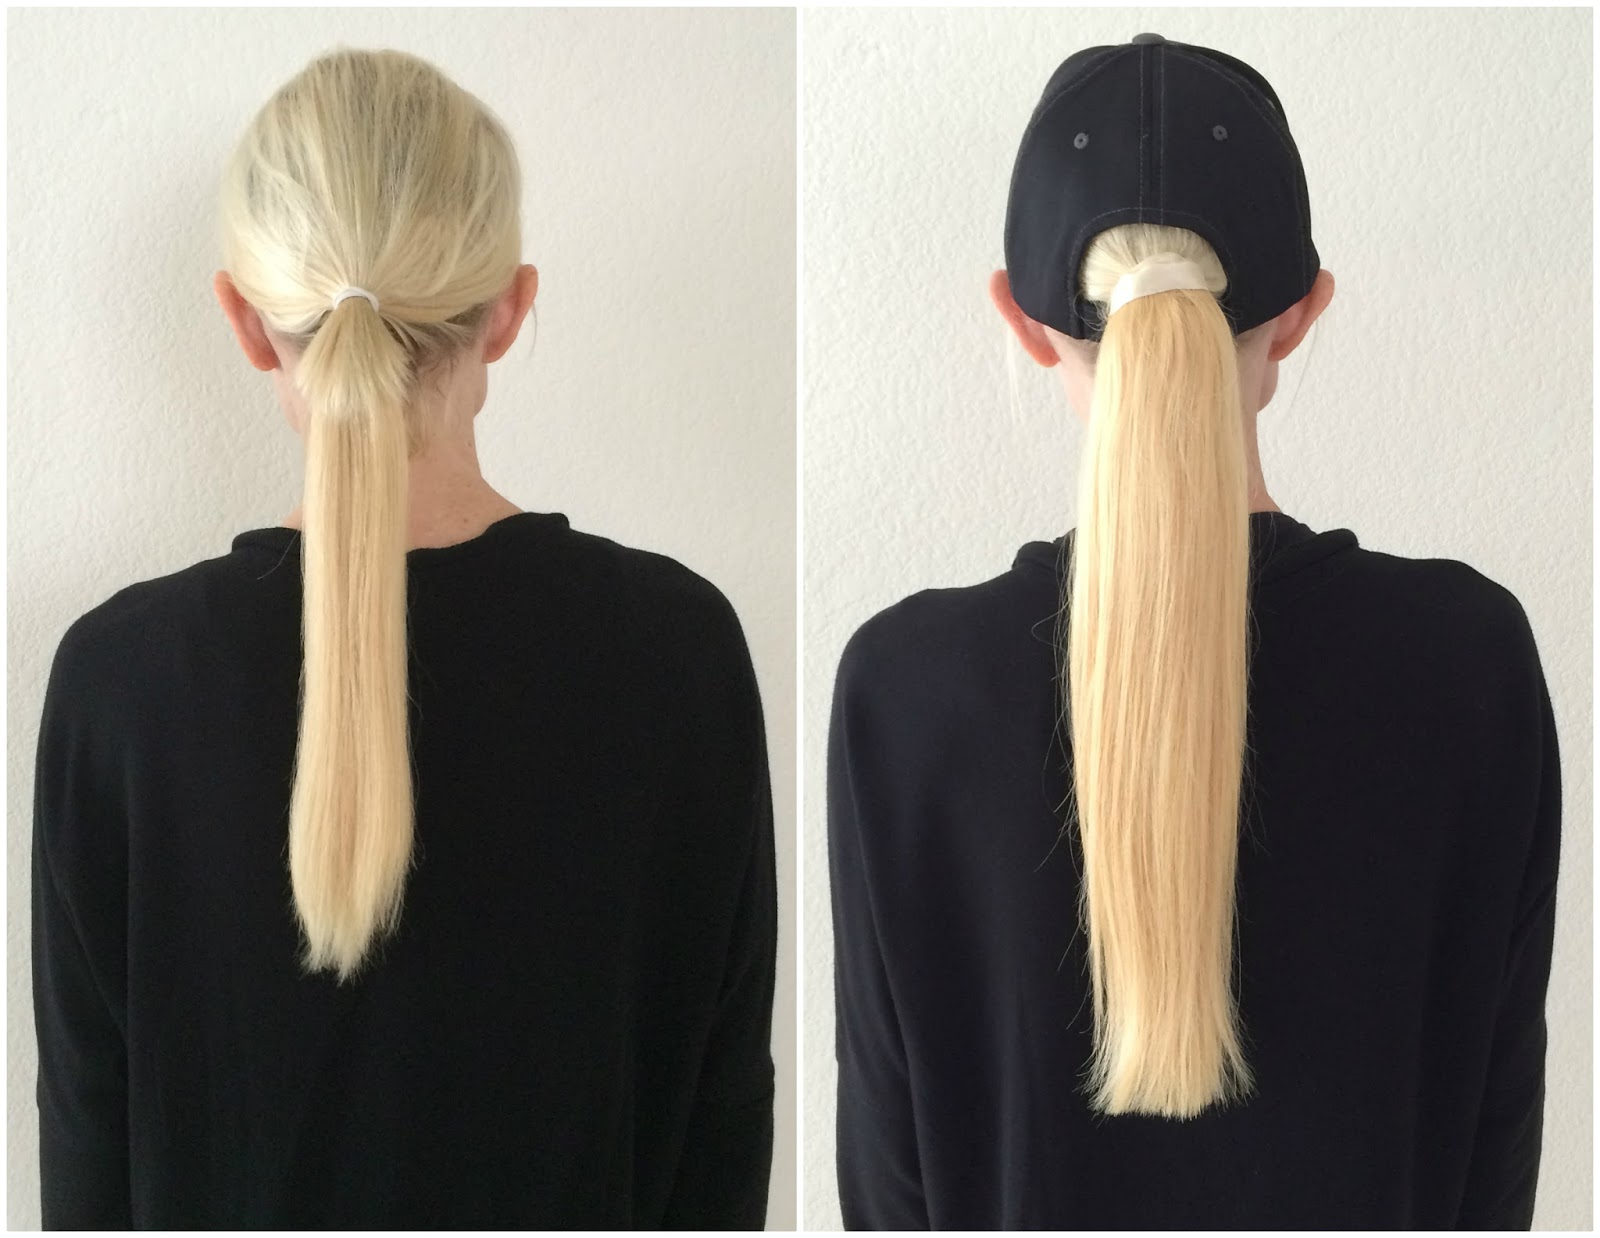 Hair extension ponytail pros and cons on the daily express euronext extensions sallys in true blonde 133 vs irresistible me ponytail 89 pmusecretfo Choice Image